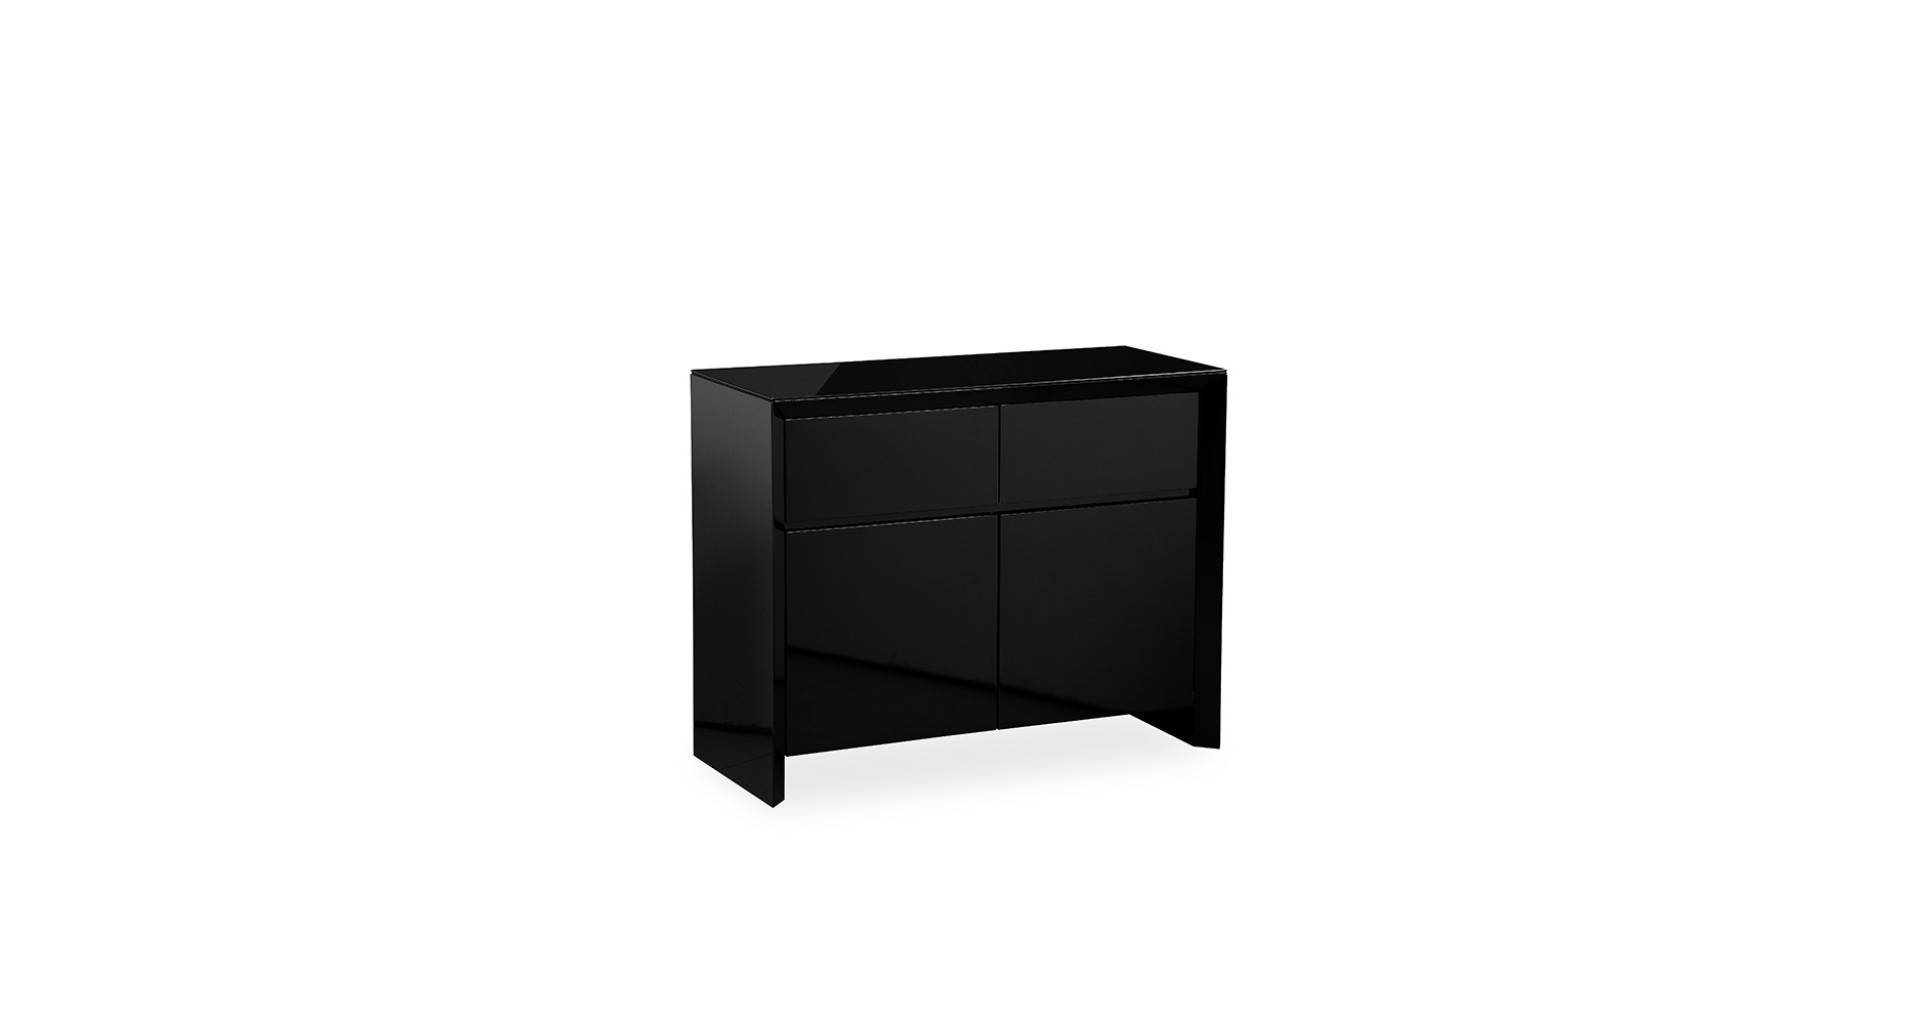 Soho - Small Sideboard - Black High Gloss pertaining to Small Black Sideboards (Image 30 of 30)